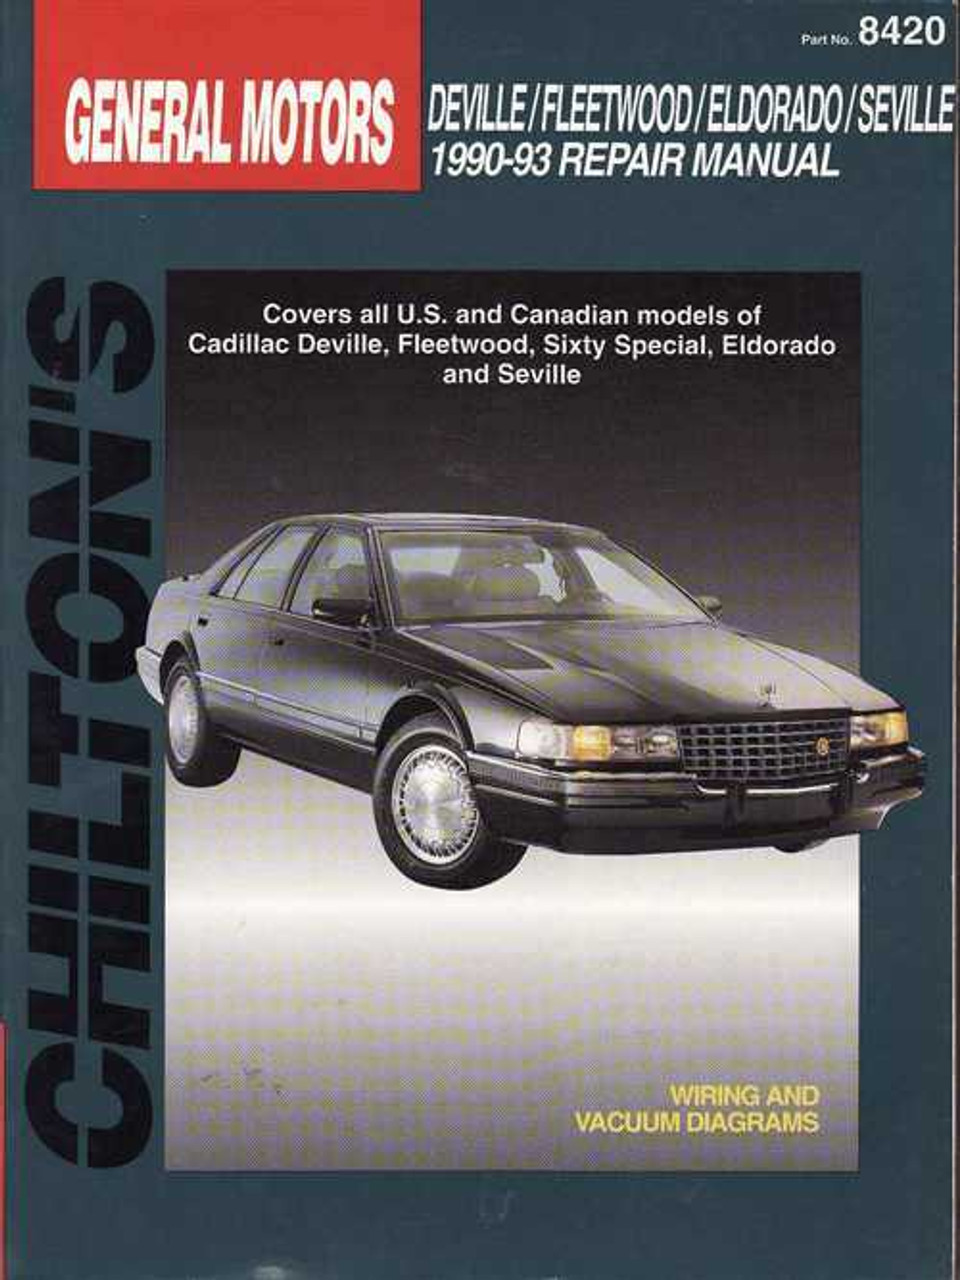 Cadillac Deville | Fleetwood | Seville 1990 - 1993 Workshop Manual